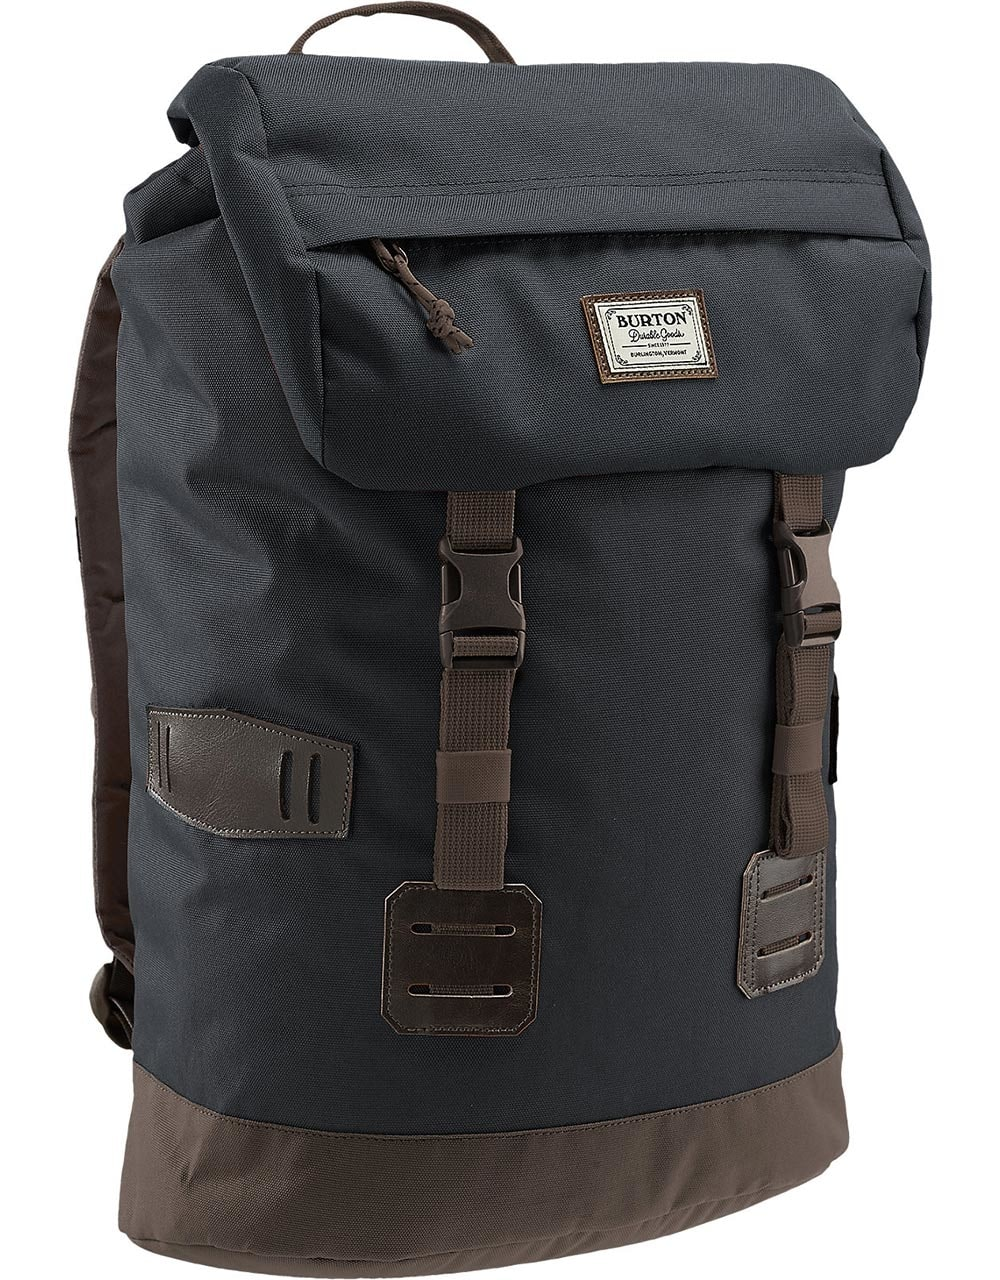 25ec0879cd78 Burton Tinder Backpack - Ink